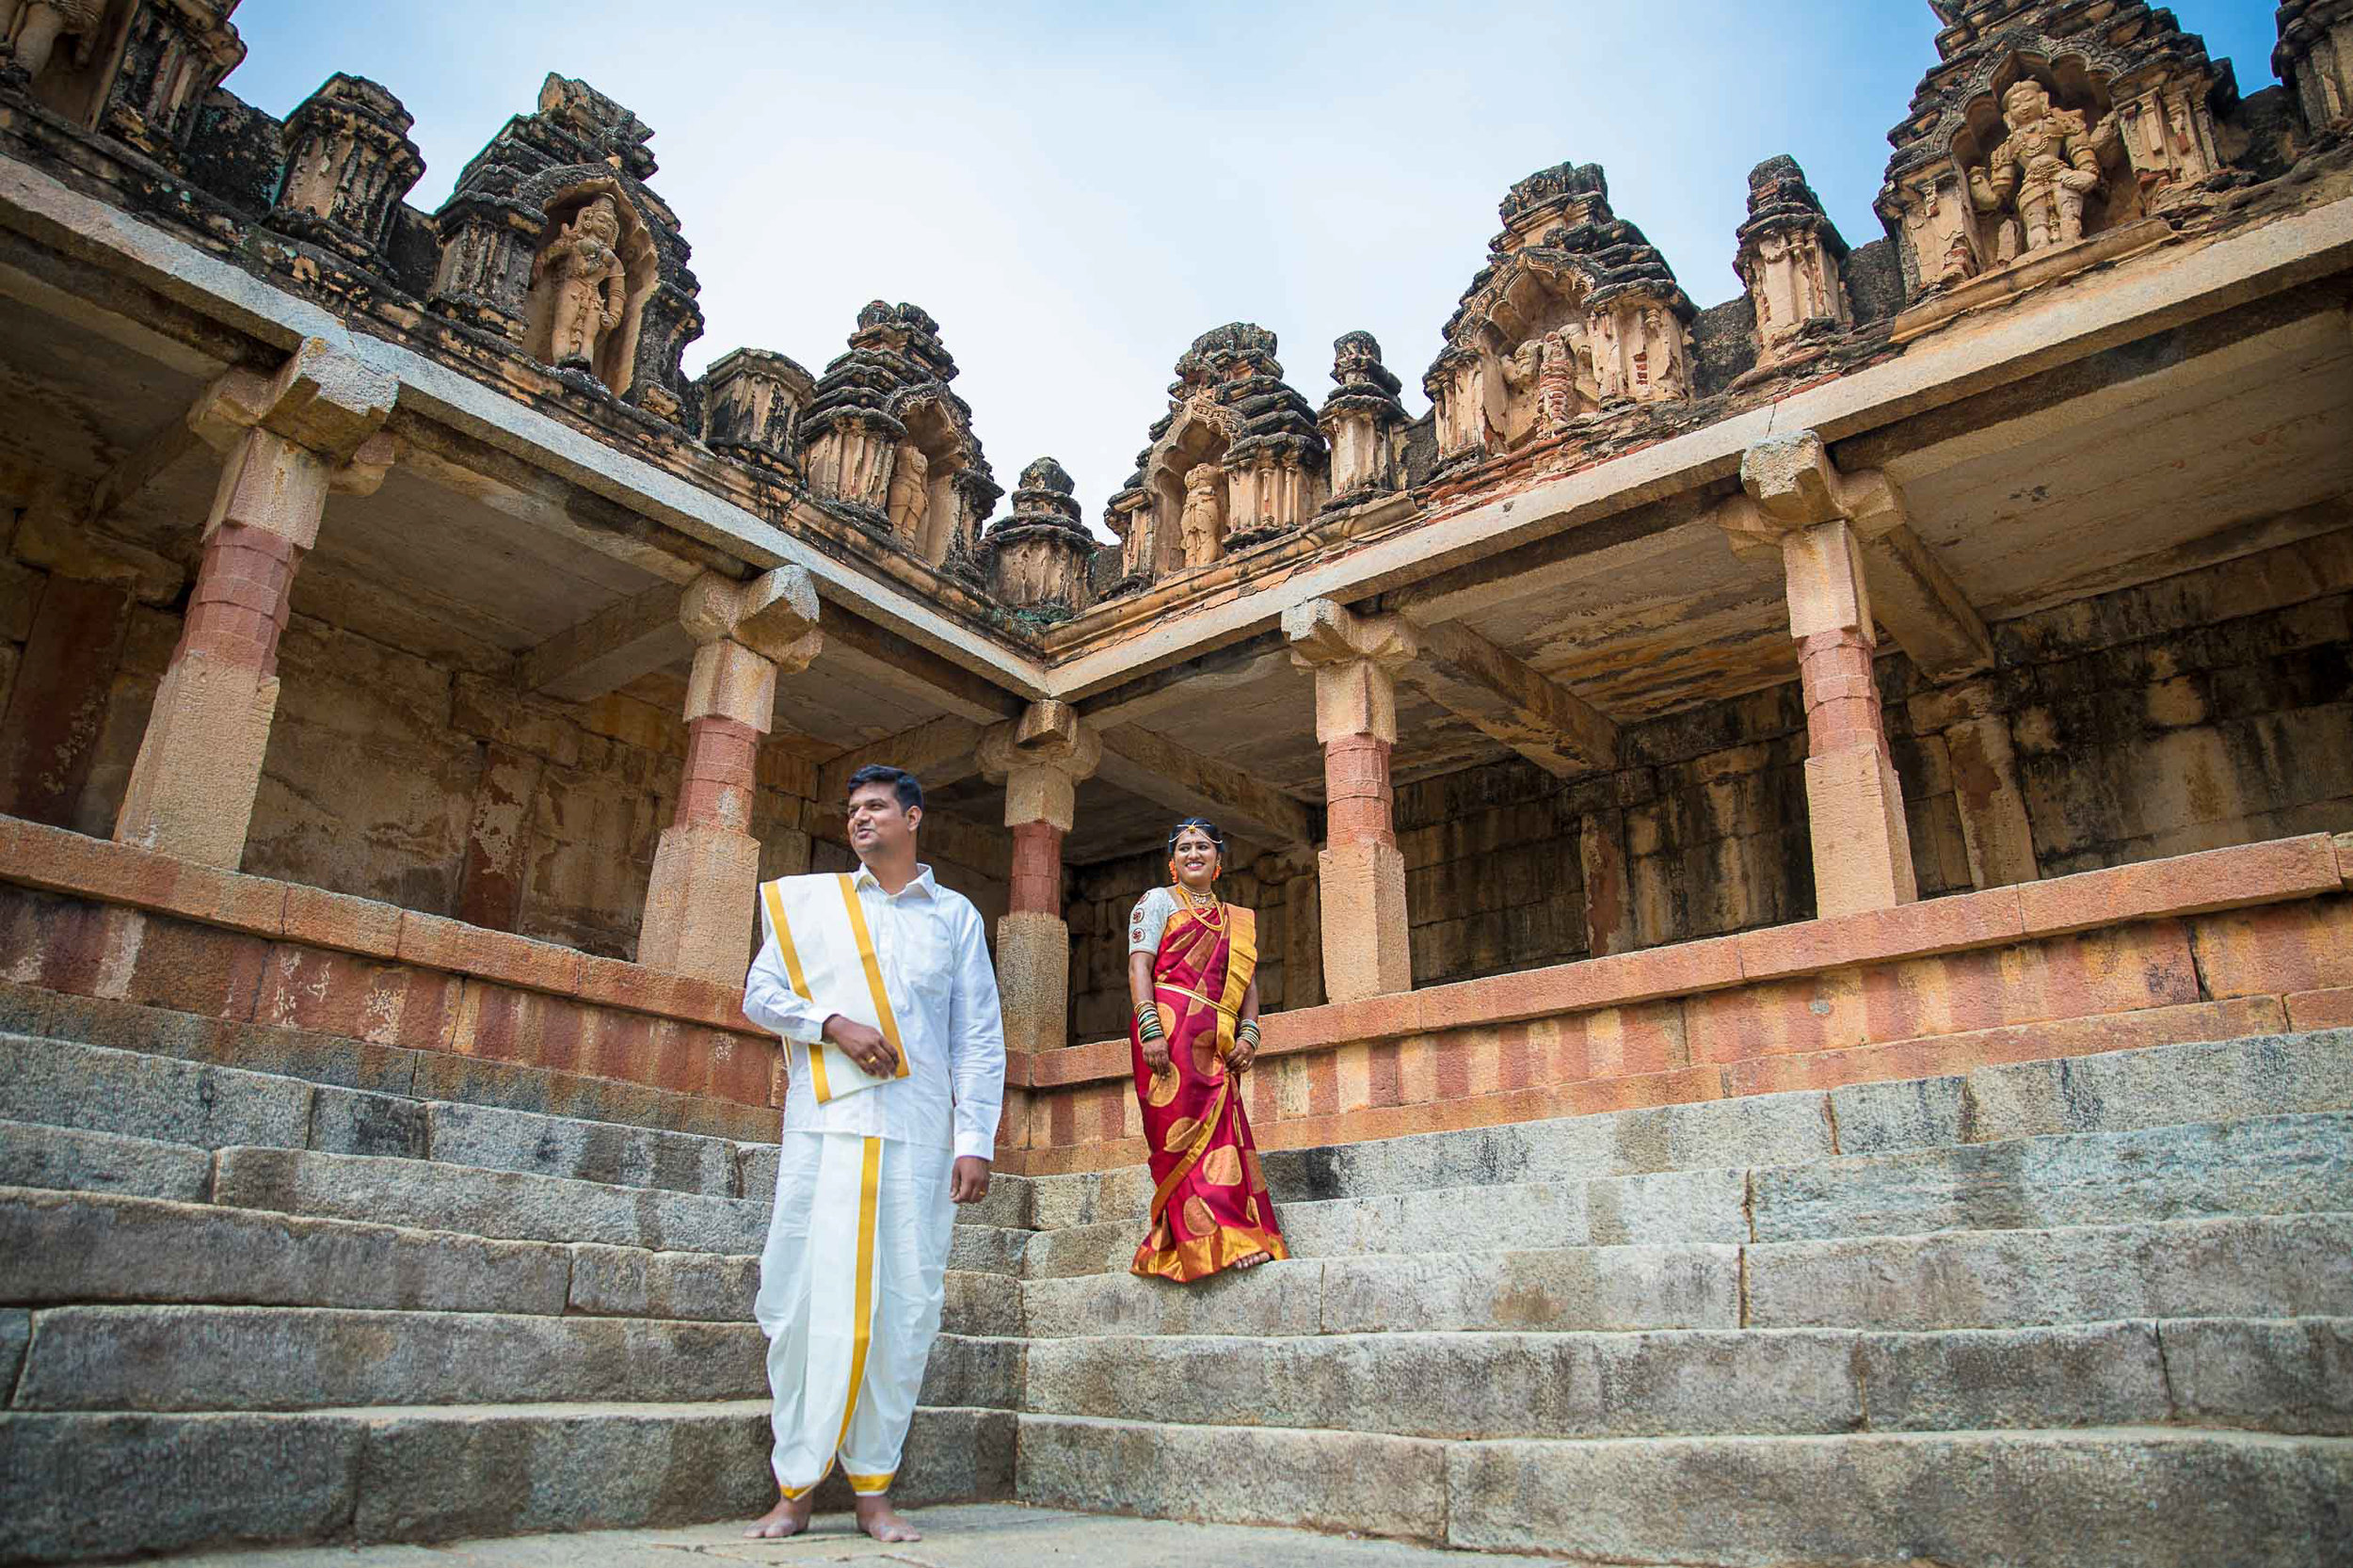 Pixel-Chronicles-Basavaraj_Pooja-bhoganandishwara-temple-Kalyani-Candid-Wedding-Photoshoot-South-Indian-Wedding-Couple-Photoshoot-Free-Lens-31.jpg